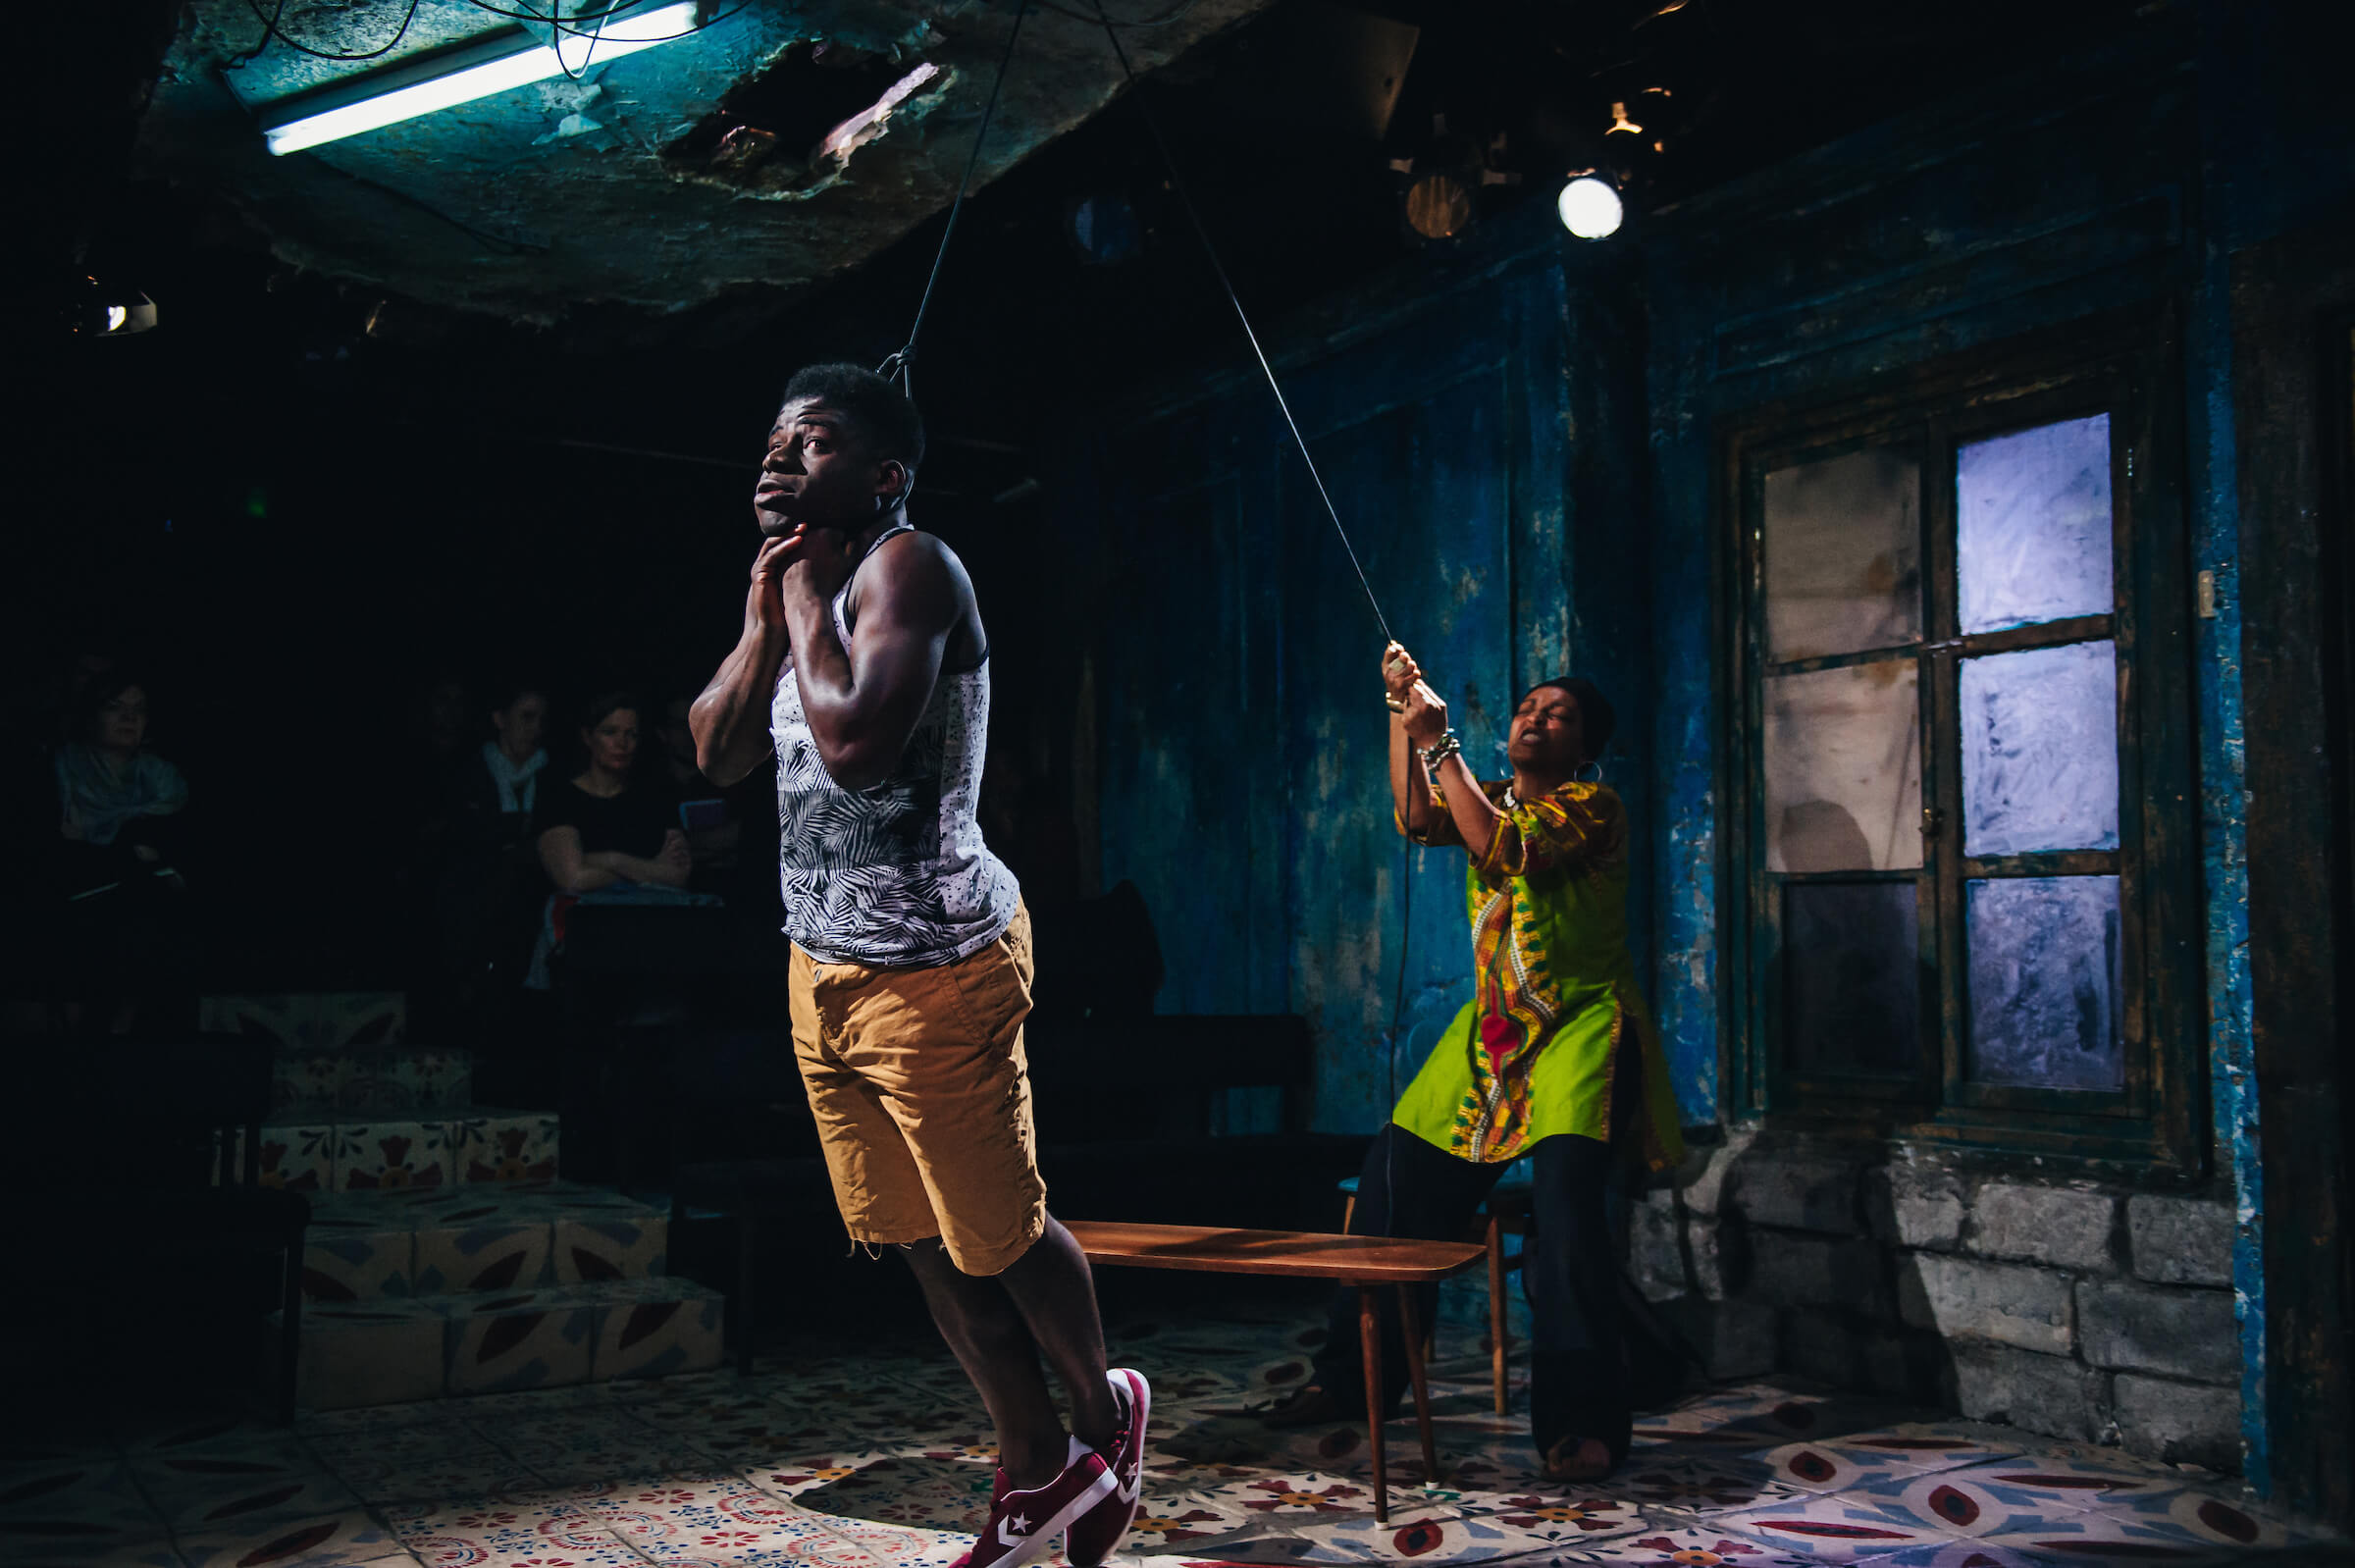 Assata Taught Me, The Gate Theatre, Director: Lynette Linton, Designer: Frankie Bradshaw, Lighting: Jack Weir, 2017